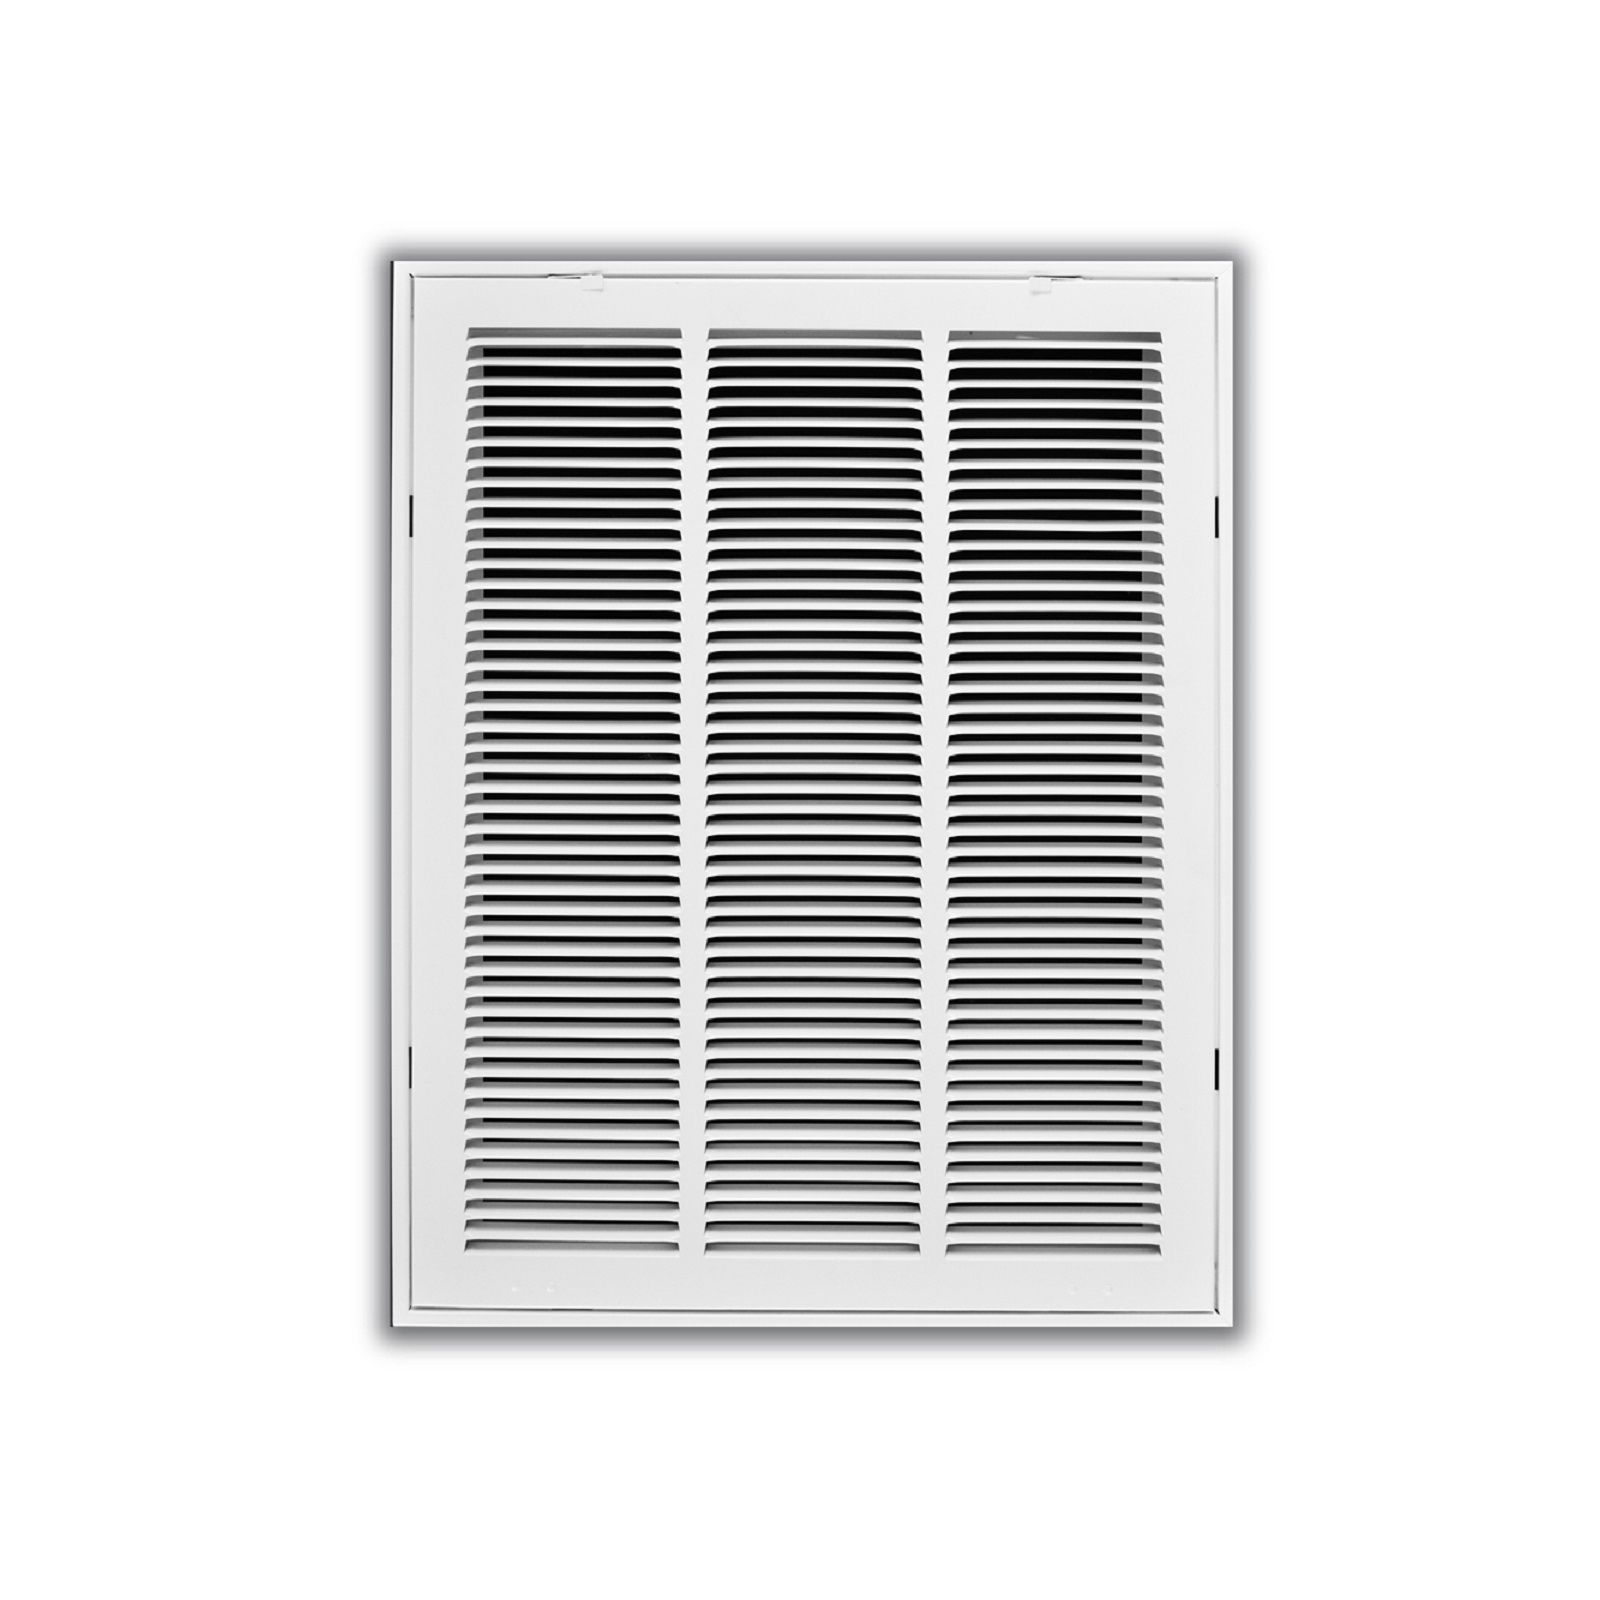 "TRUaire 190 20X14 - Steel Return Air Filter Grille With Fixed Hinged Face, White, 20"" X 14"""